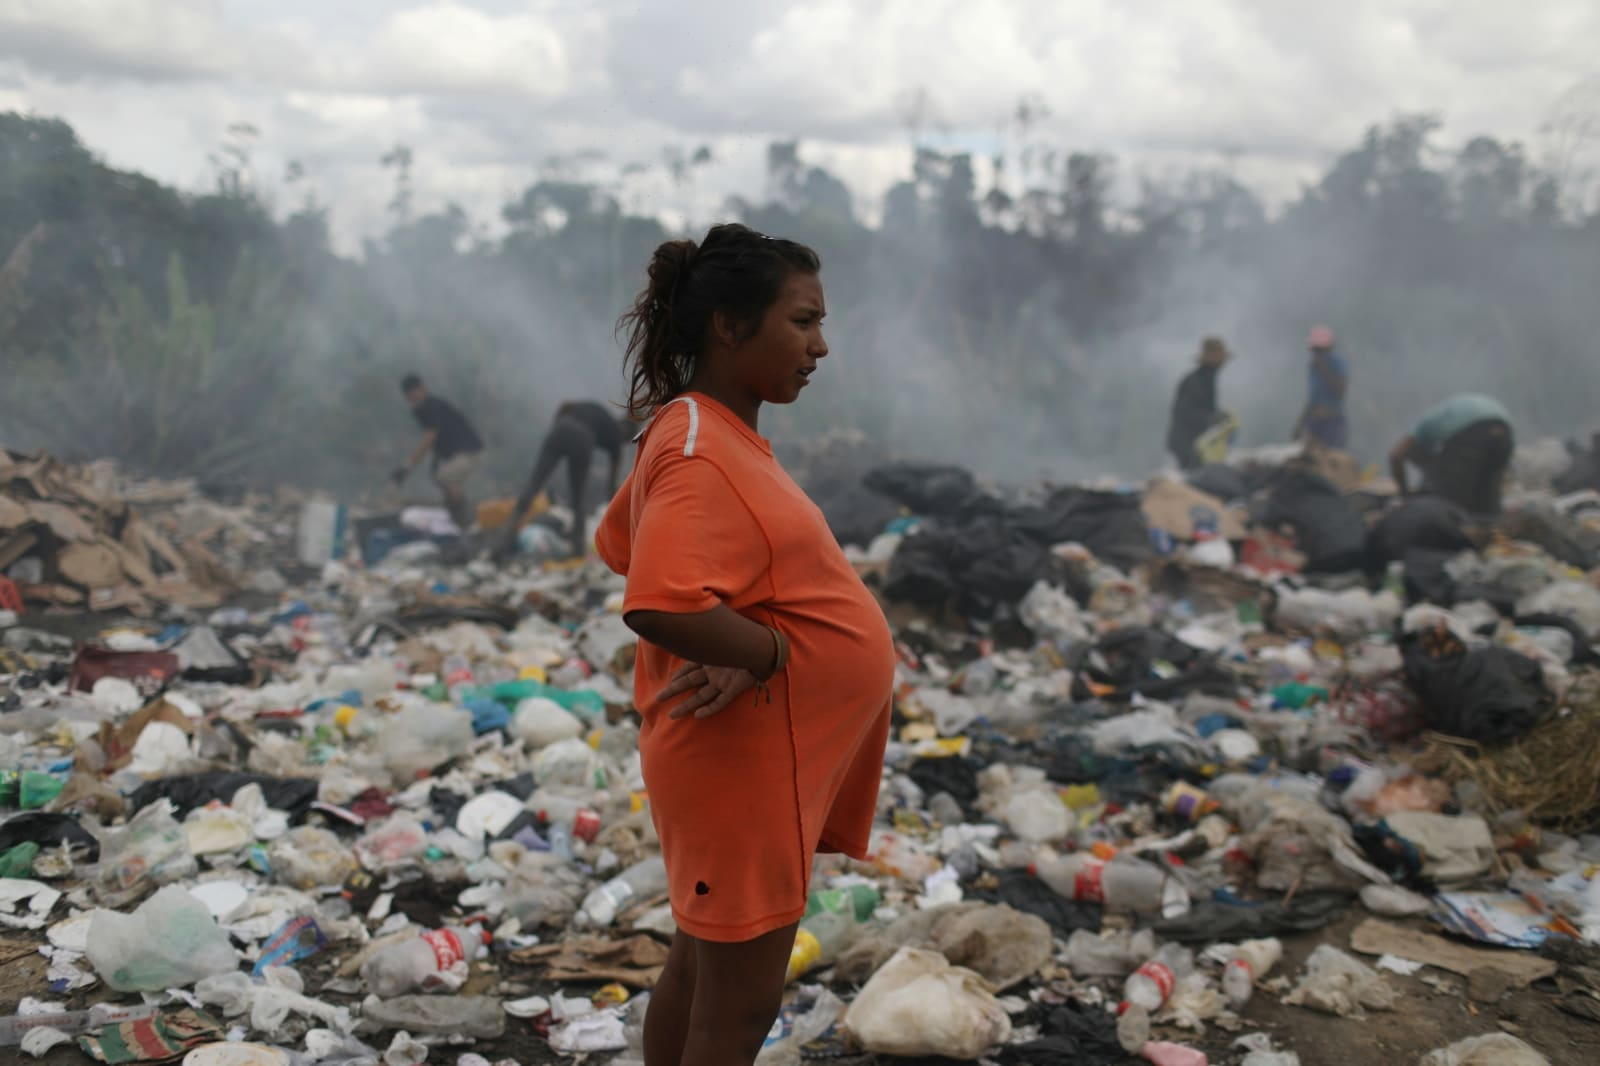 Venezuelan Astrid Prado, who is 8 months pregnant, is seen at a garbage dump in the border city of Pacaraima, Brazil April 13, 2019. REUTERS/Pilar Olivares